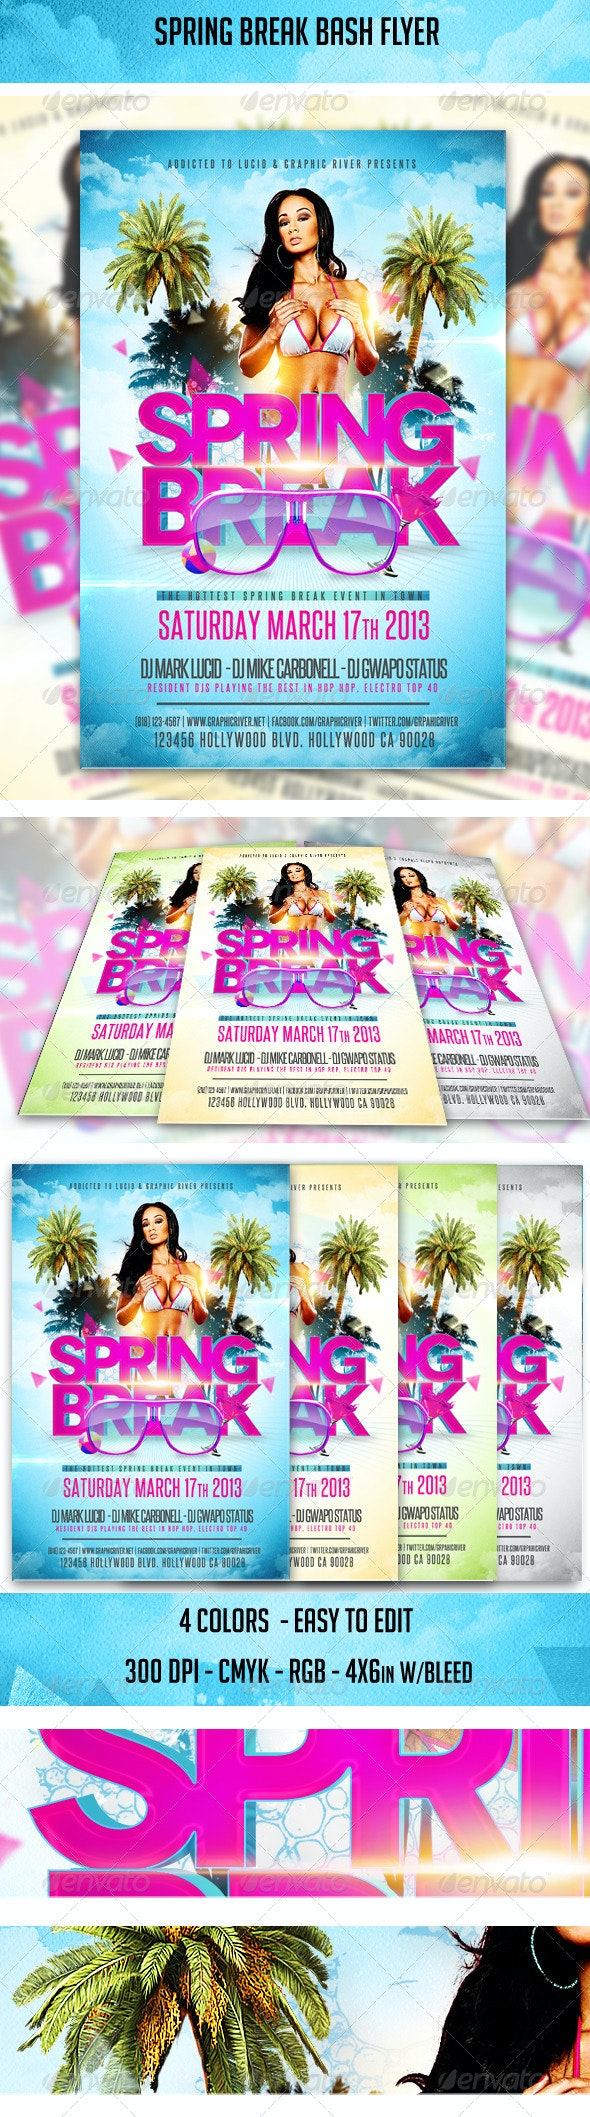 Spring Break Bash Flyer - Clubs & Parties Events